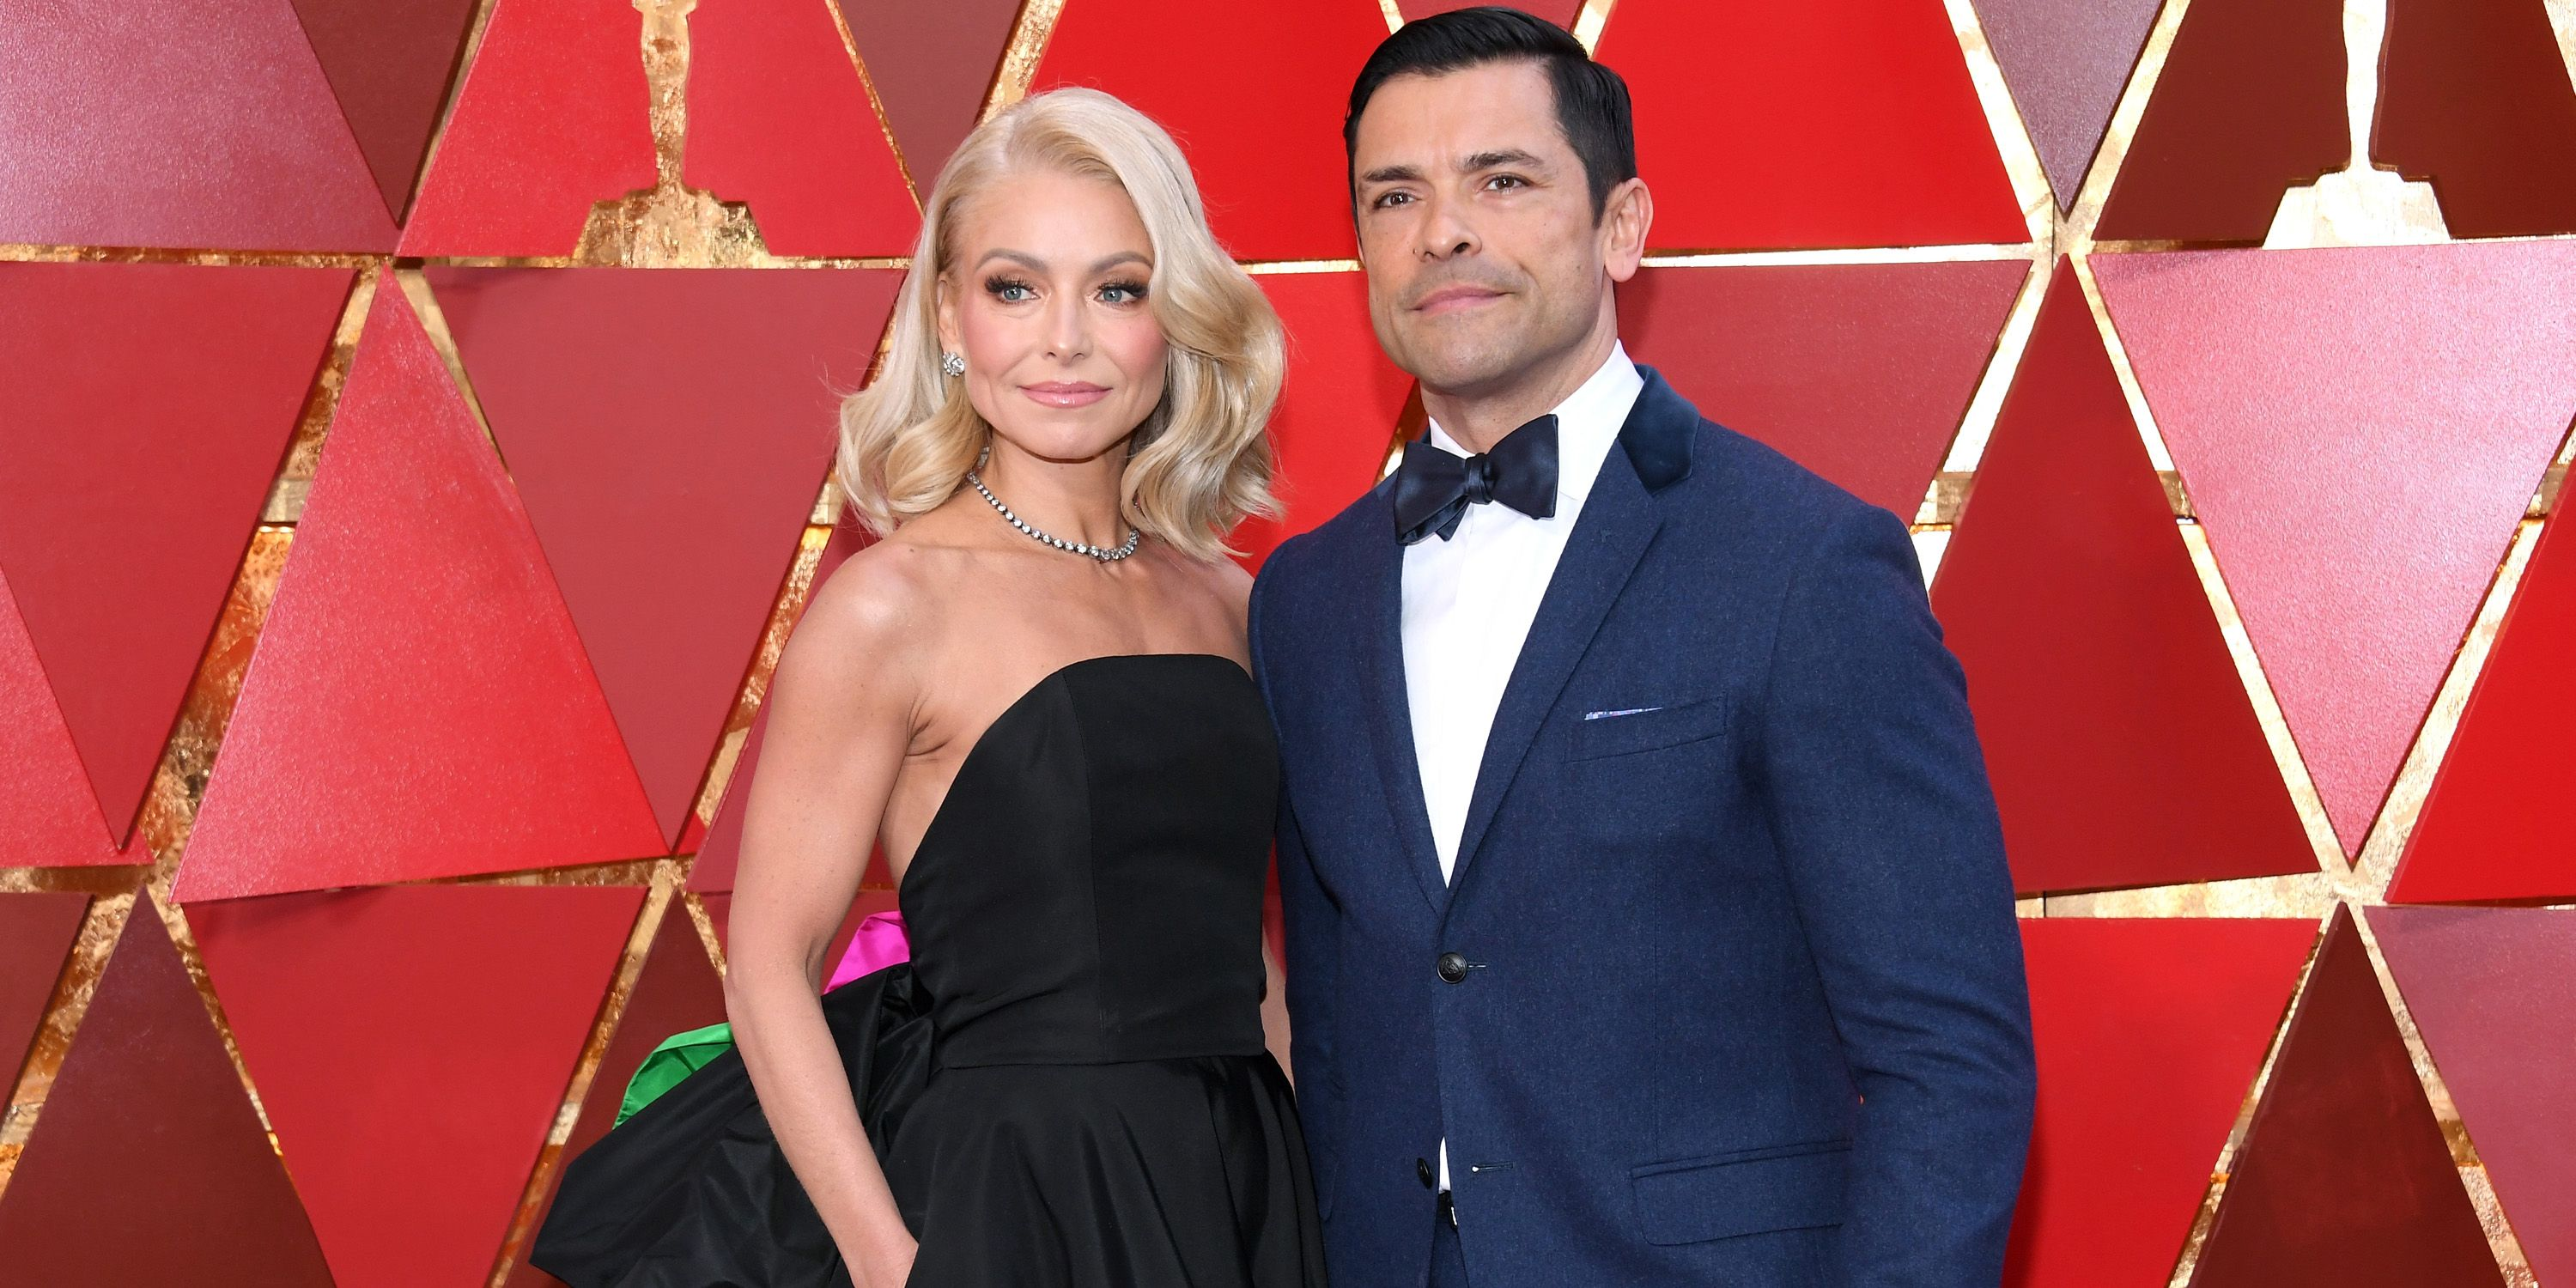 Kelly Ripa Slams Body Shamers Who Attacked Her on Instagram